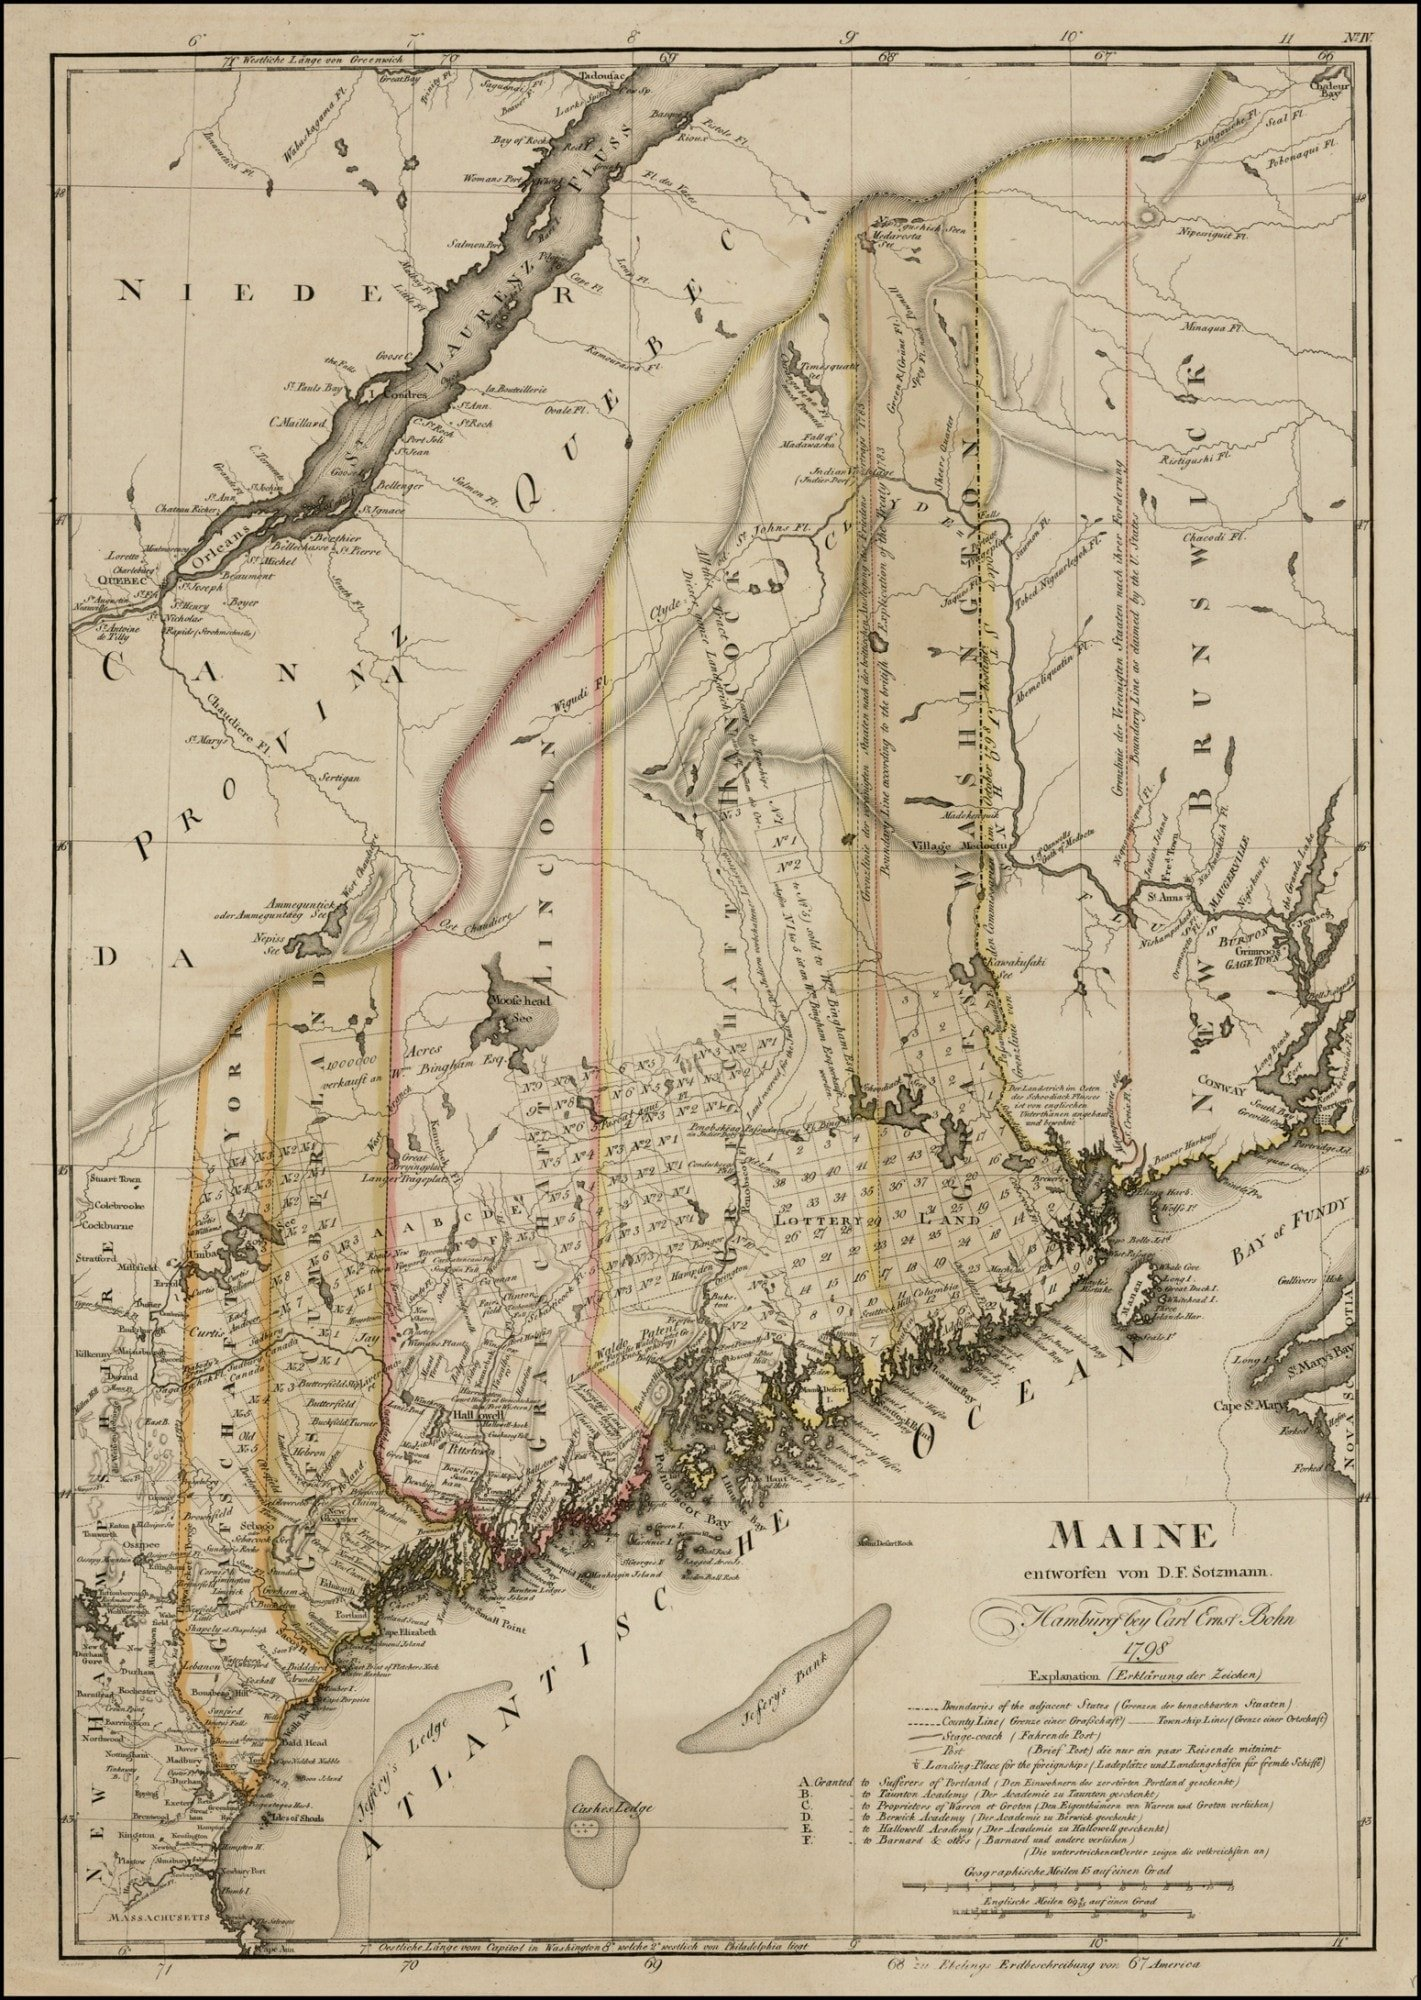 Undoubtedly one of the finest early maps of Maine Thompson Rare